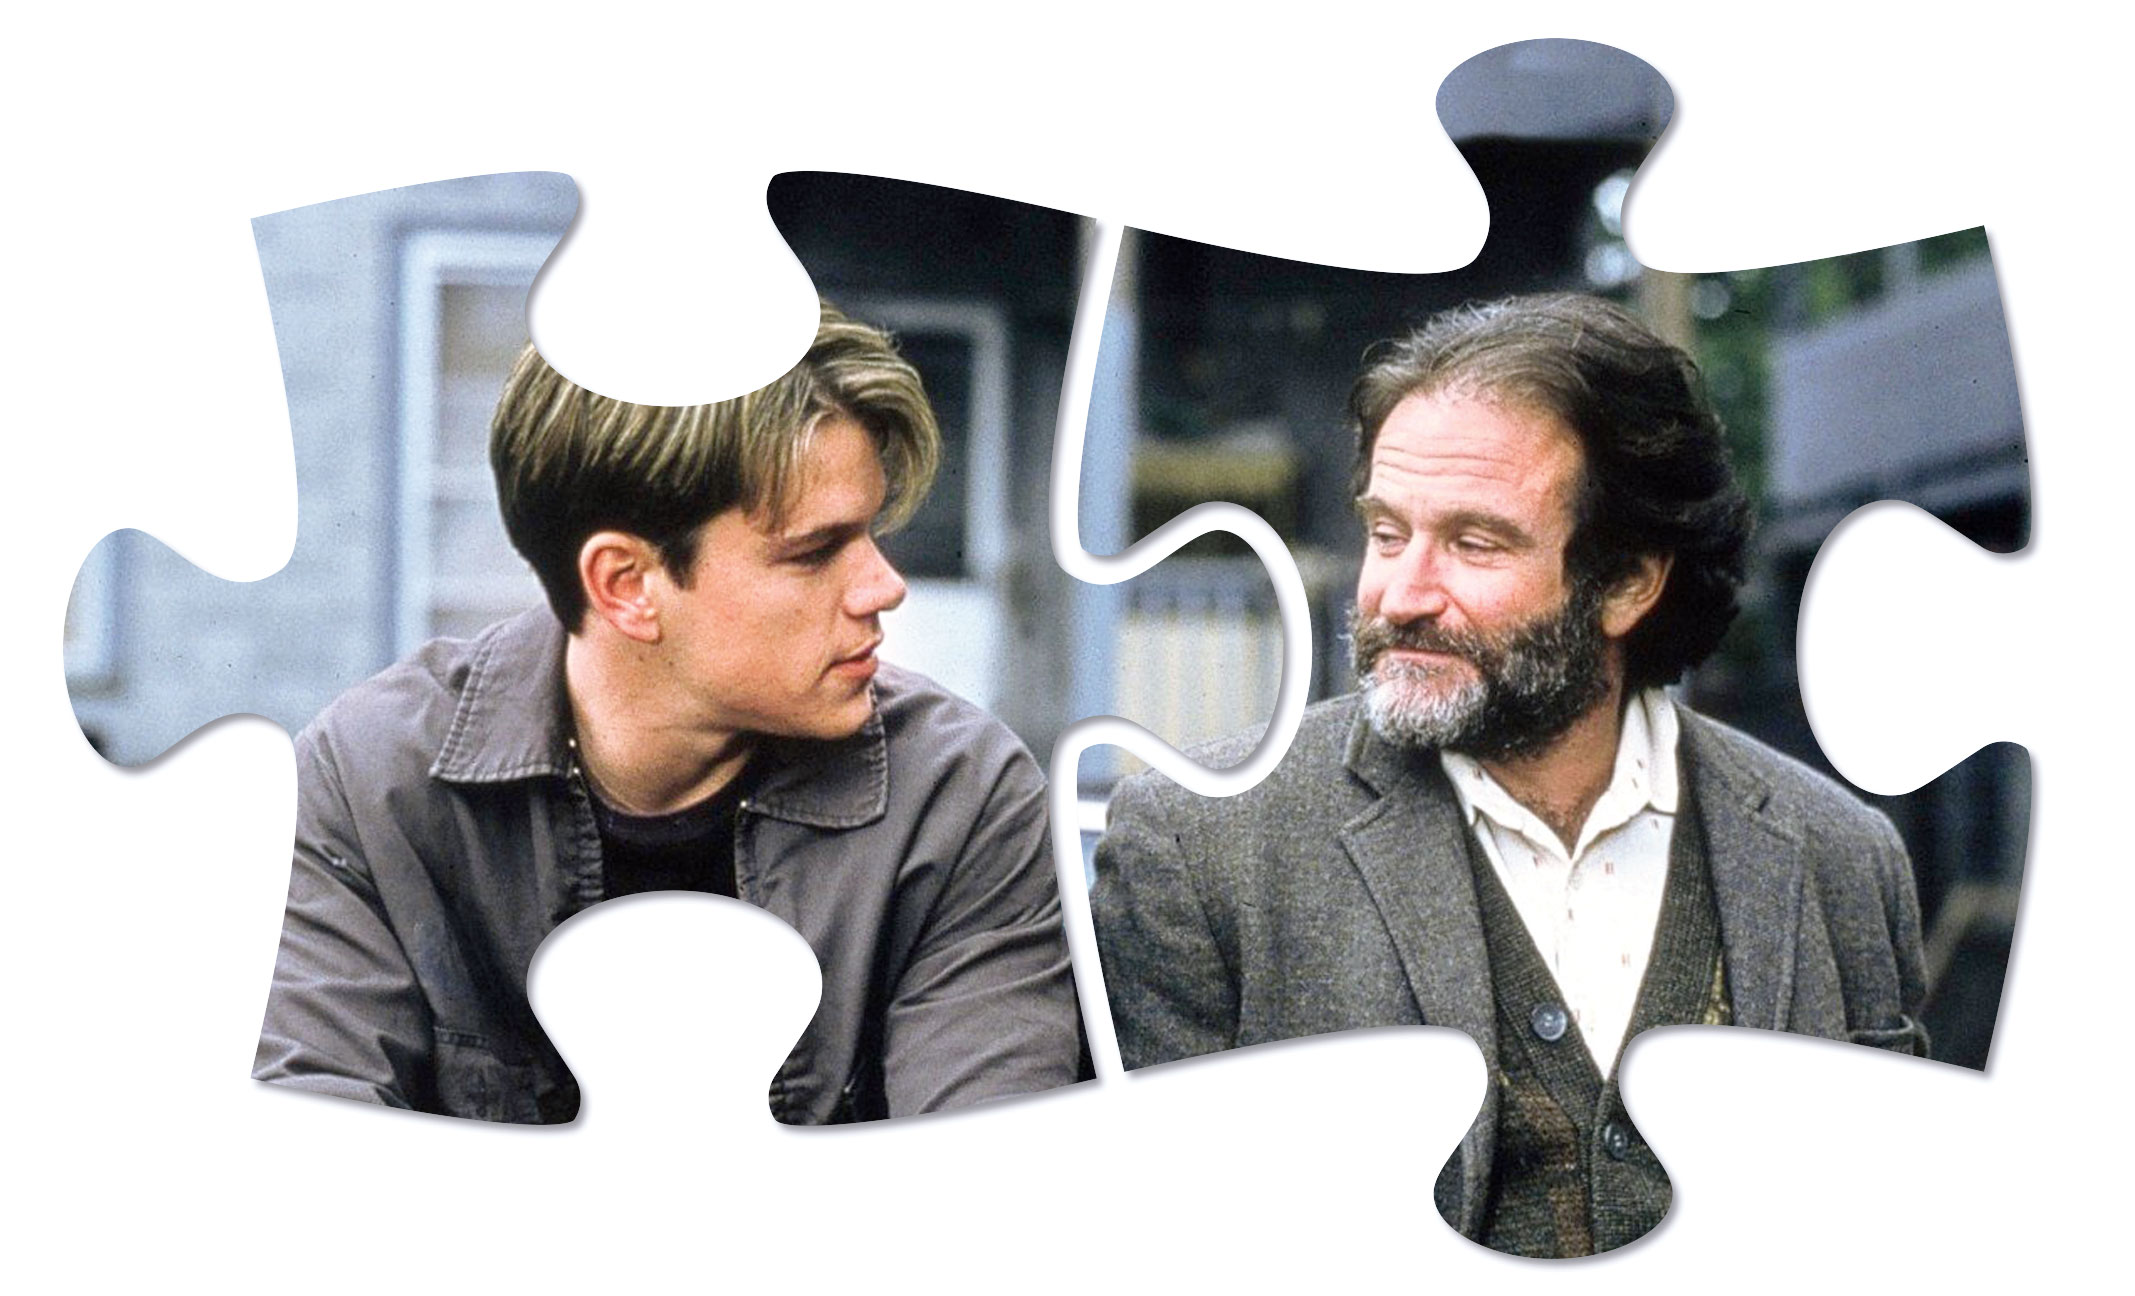 In Good Will Hunting, therapist Sean McGuire (Robin Williams) and boy genius Will Hunting (Matt Damon) in need of counselling, develop a doctor-patient sparring that becomes affecting and important to both parties.